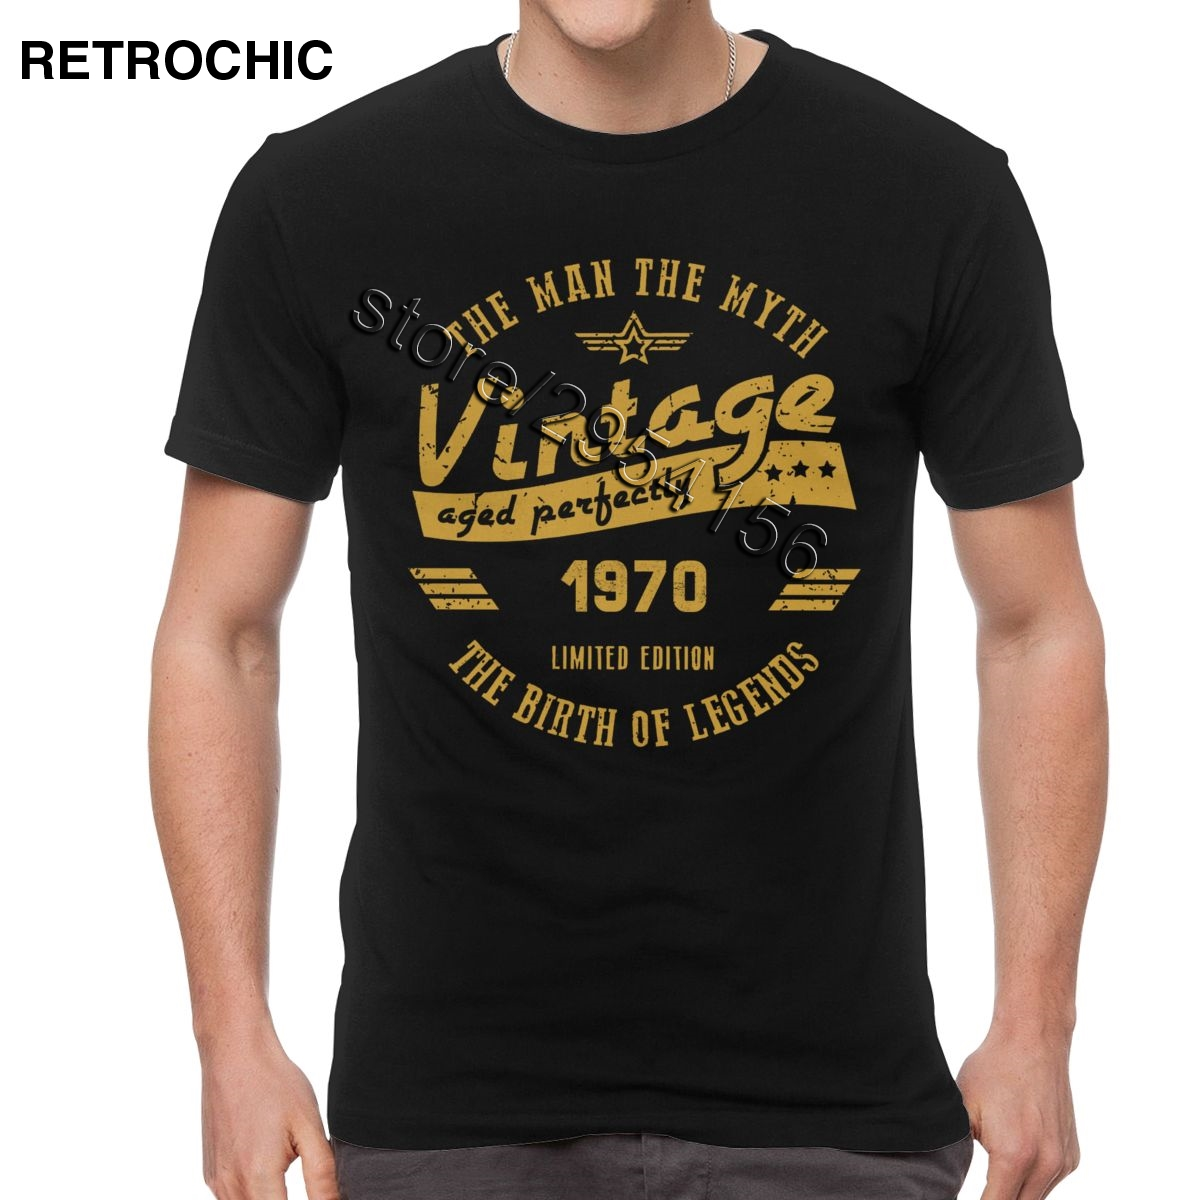 Classic Men Cotton The Birth Of Legend 1970 T Shirt Short Sleeved The Man The Myth 50th Birthday Gift Tee 50 Years Old T-Shirt